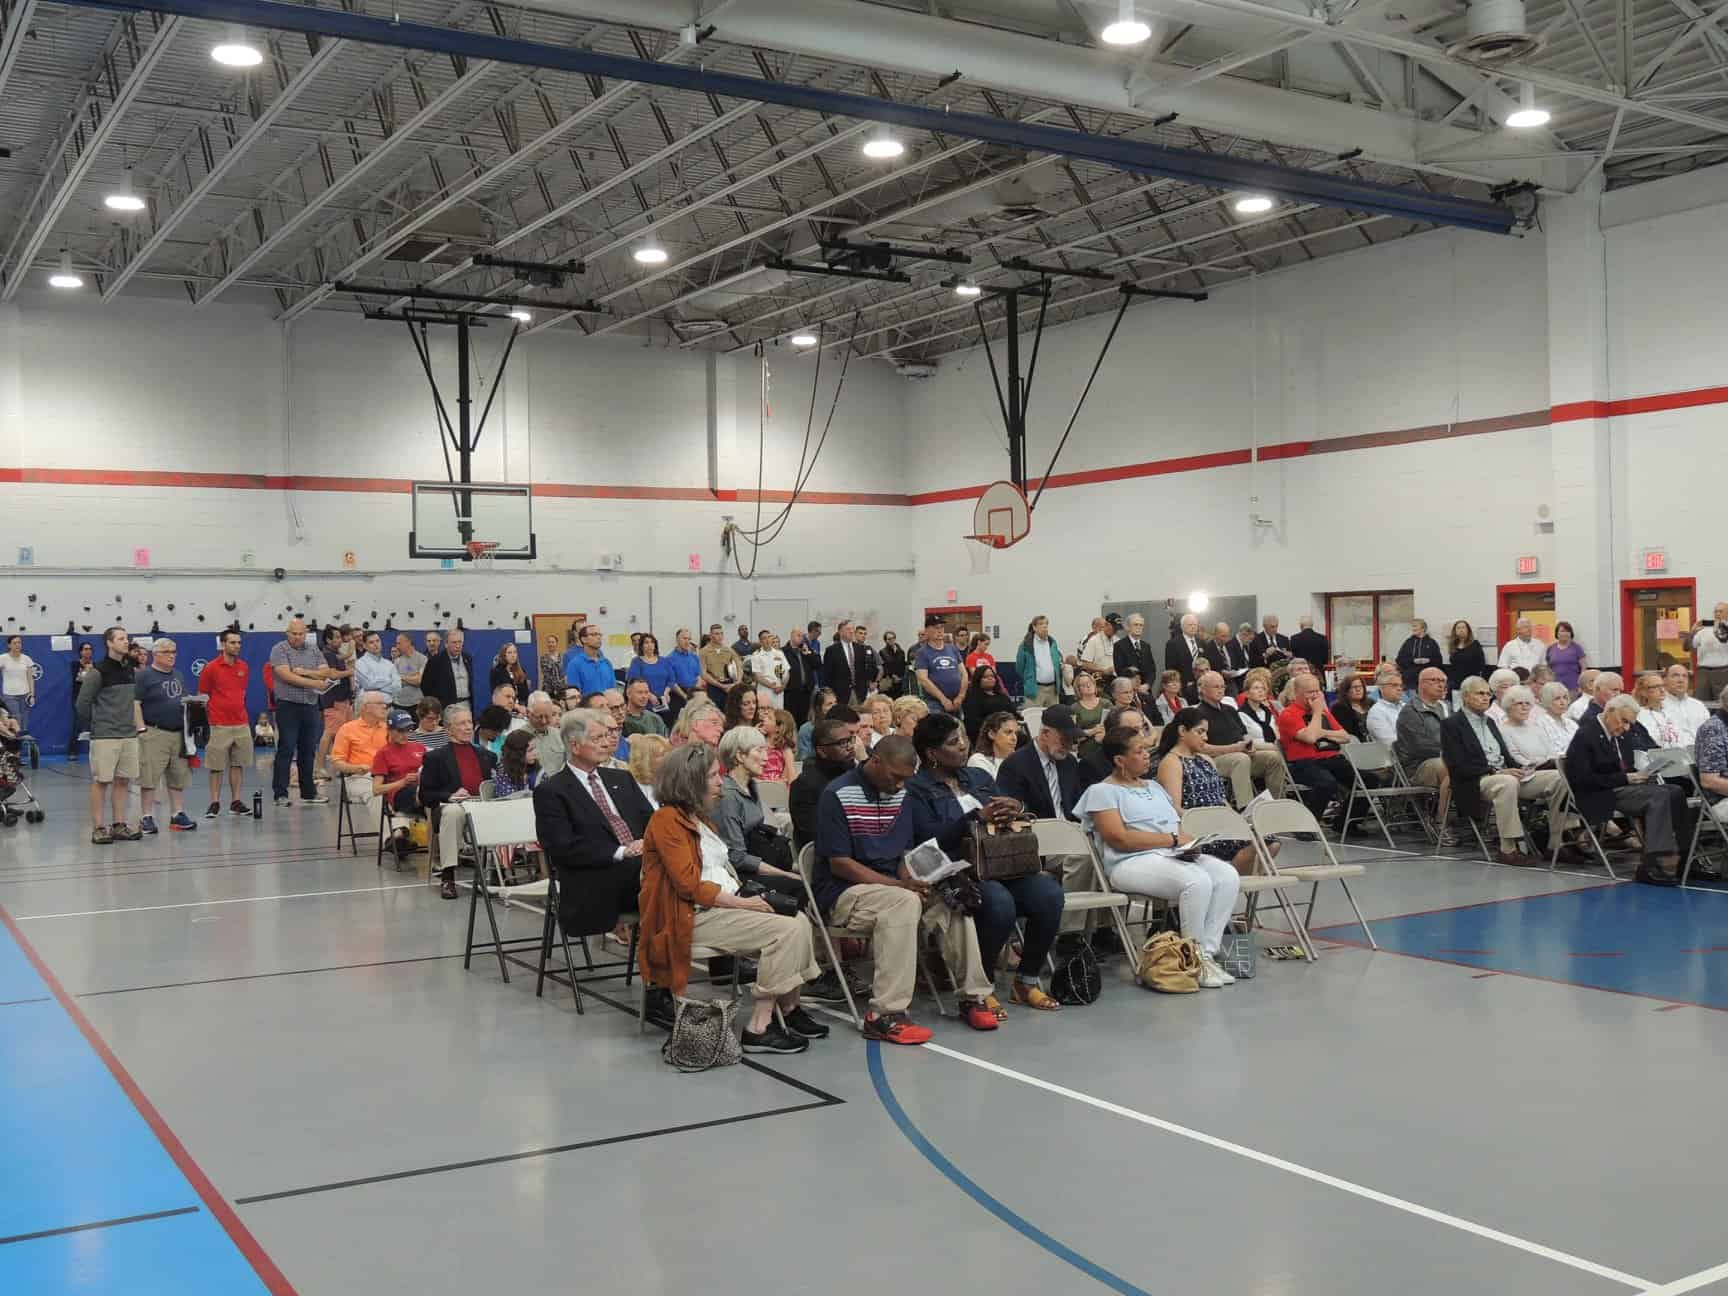 Families and friends honored fallen heroes from Alexandria, Virginia on Monday, May 30thatthe annual Memorial Day Ceremonyat Mount Vernon Recreation Center in honor of Captain Rocky Versace Plaza and other Alexandria veterans of the Vietnam War.